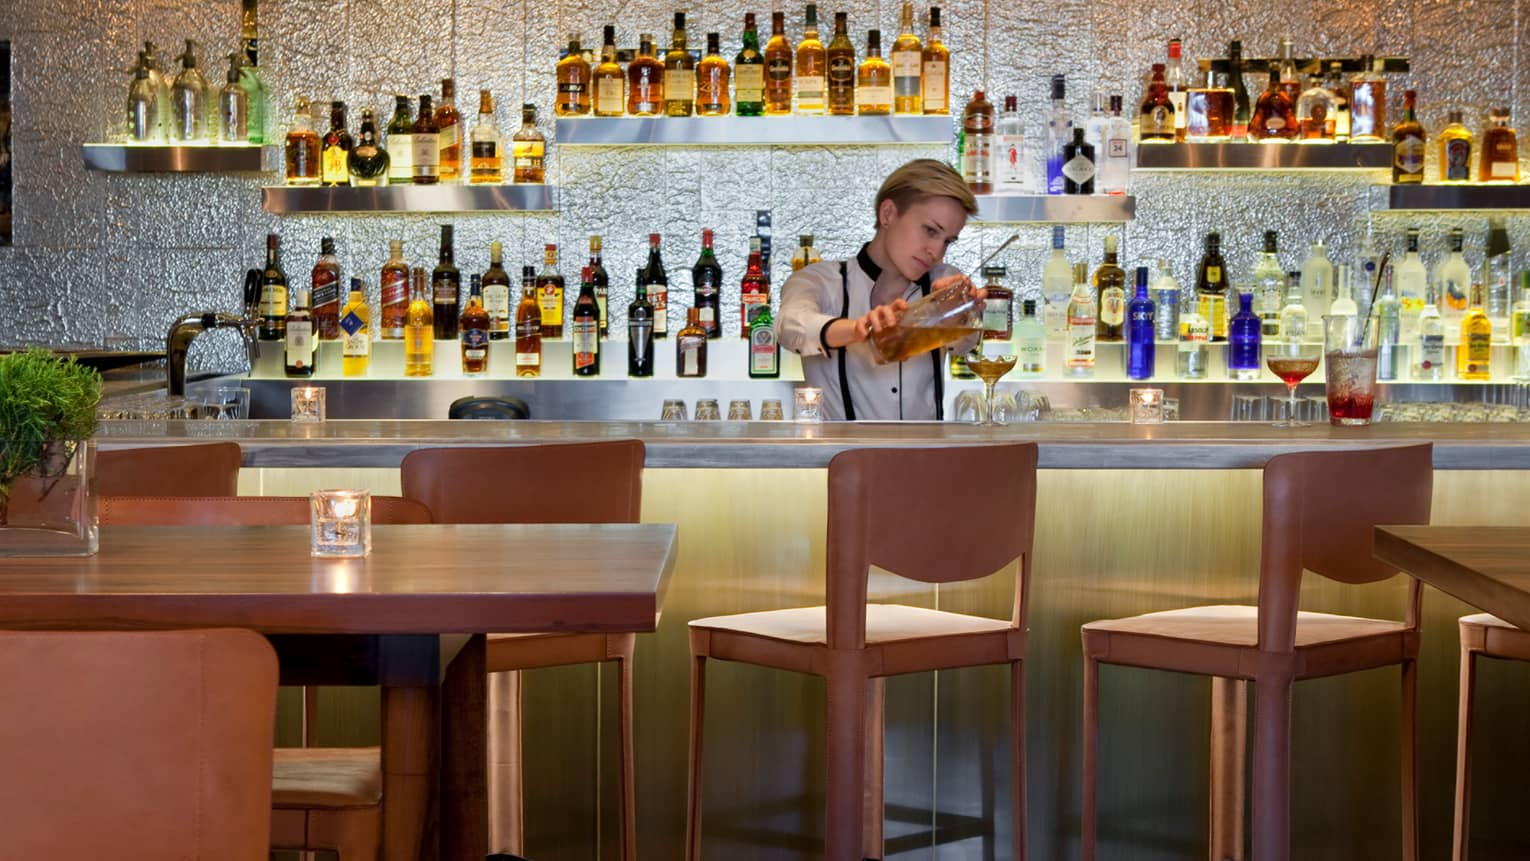 Pony Bar server pours cocktail into glass behind wood bar with stools, in front of wall of liquor bottles